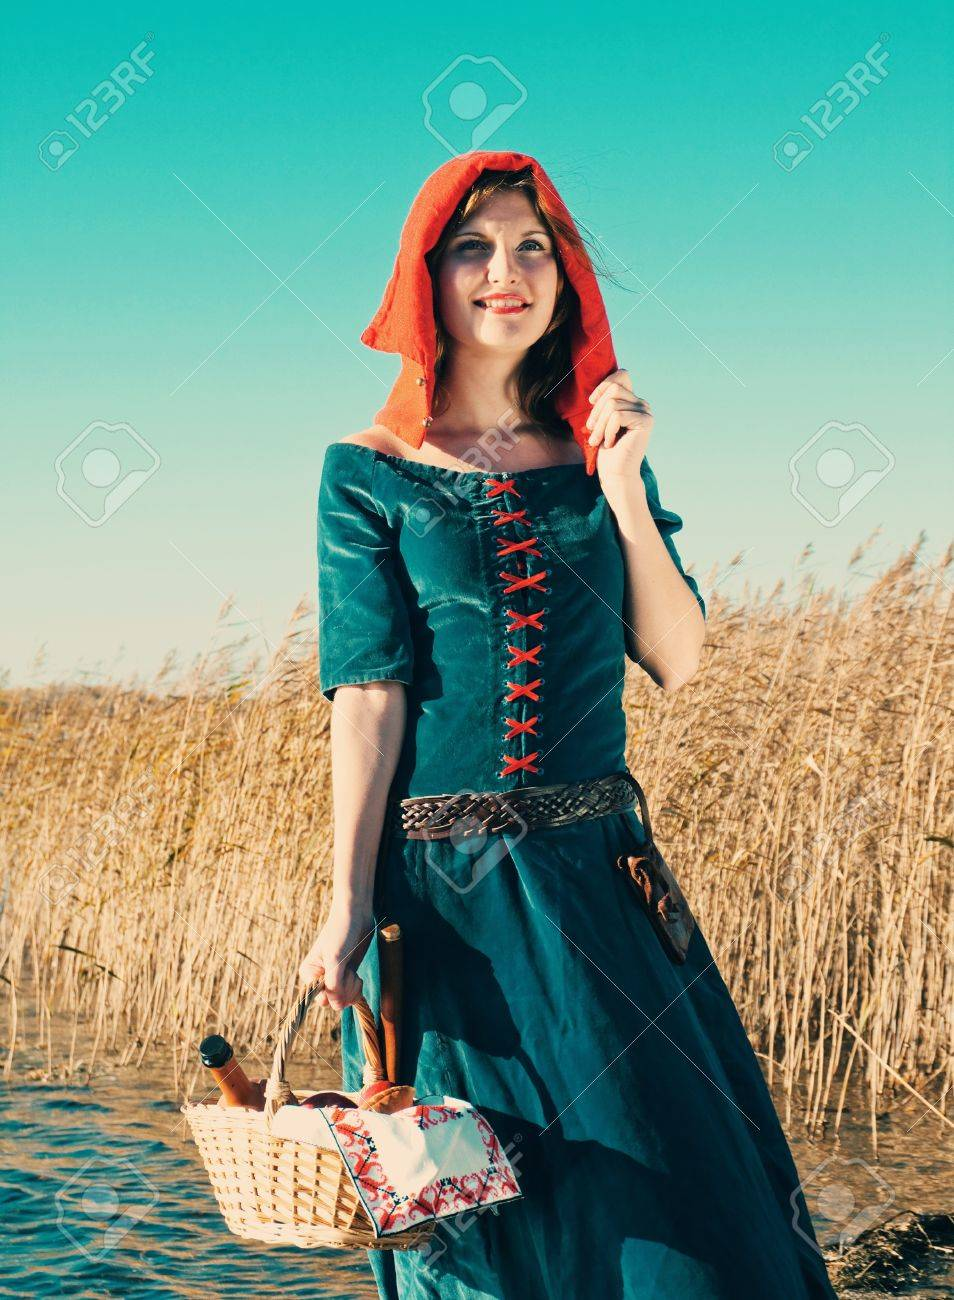 red Riding  hood.beautiful girl in medieval dress Stock Photo - 12154742